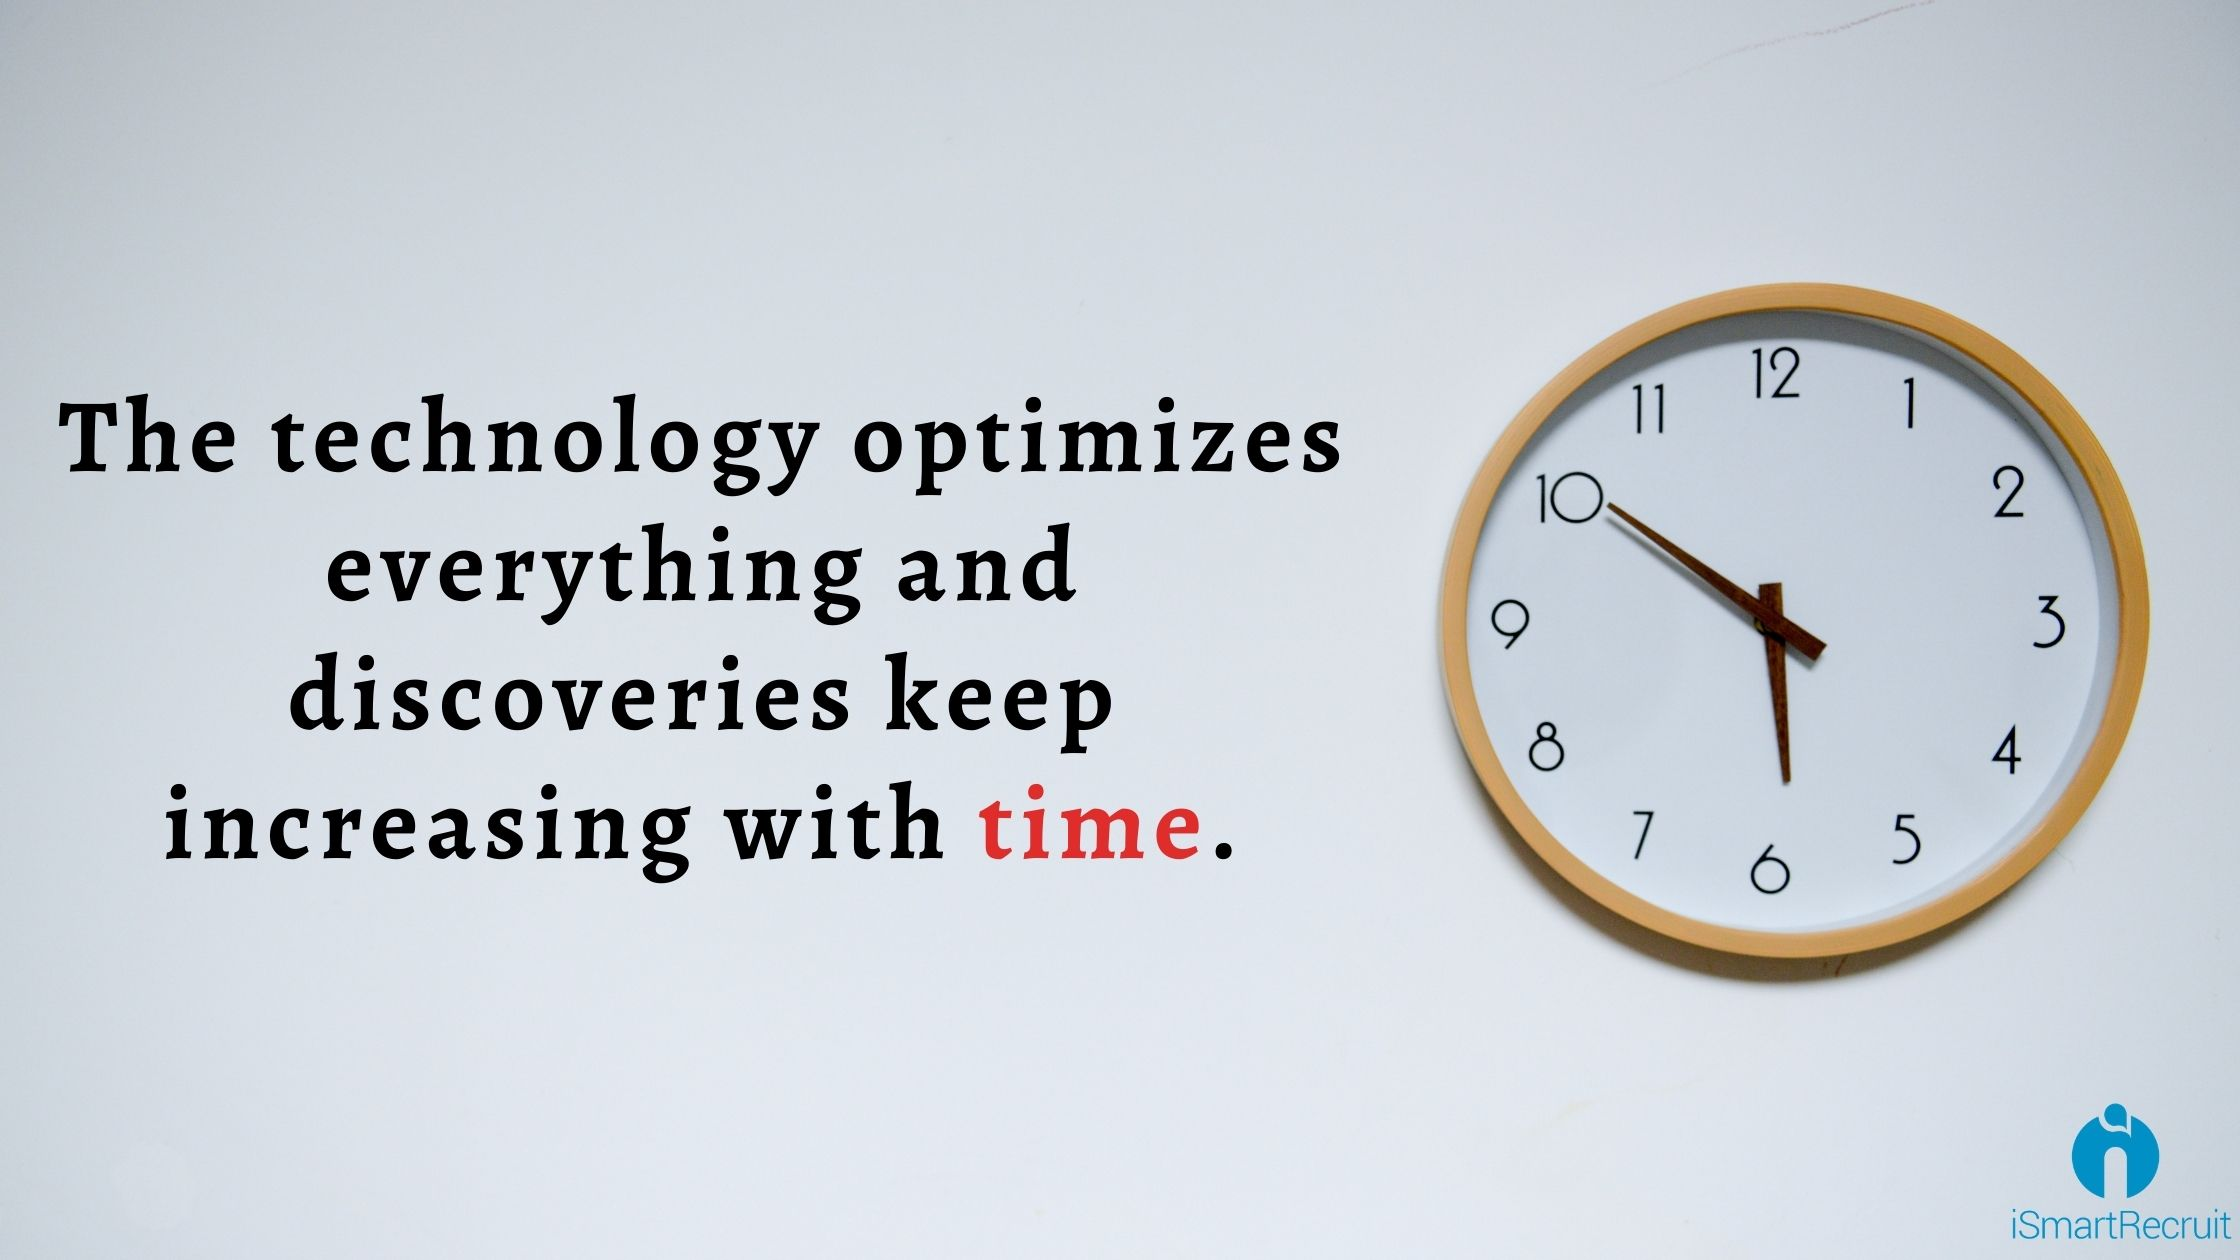 Technology optimizes everything and discoveries keep increasing with time